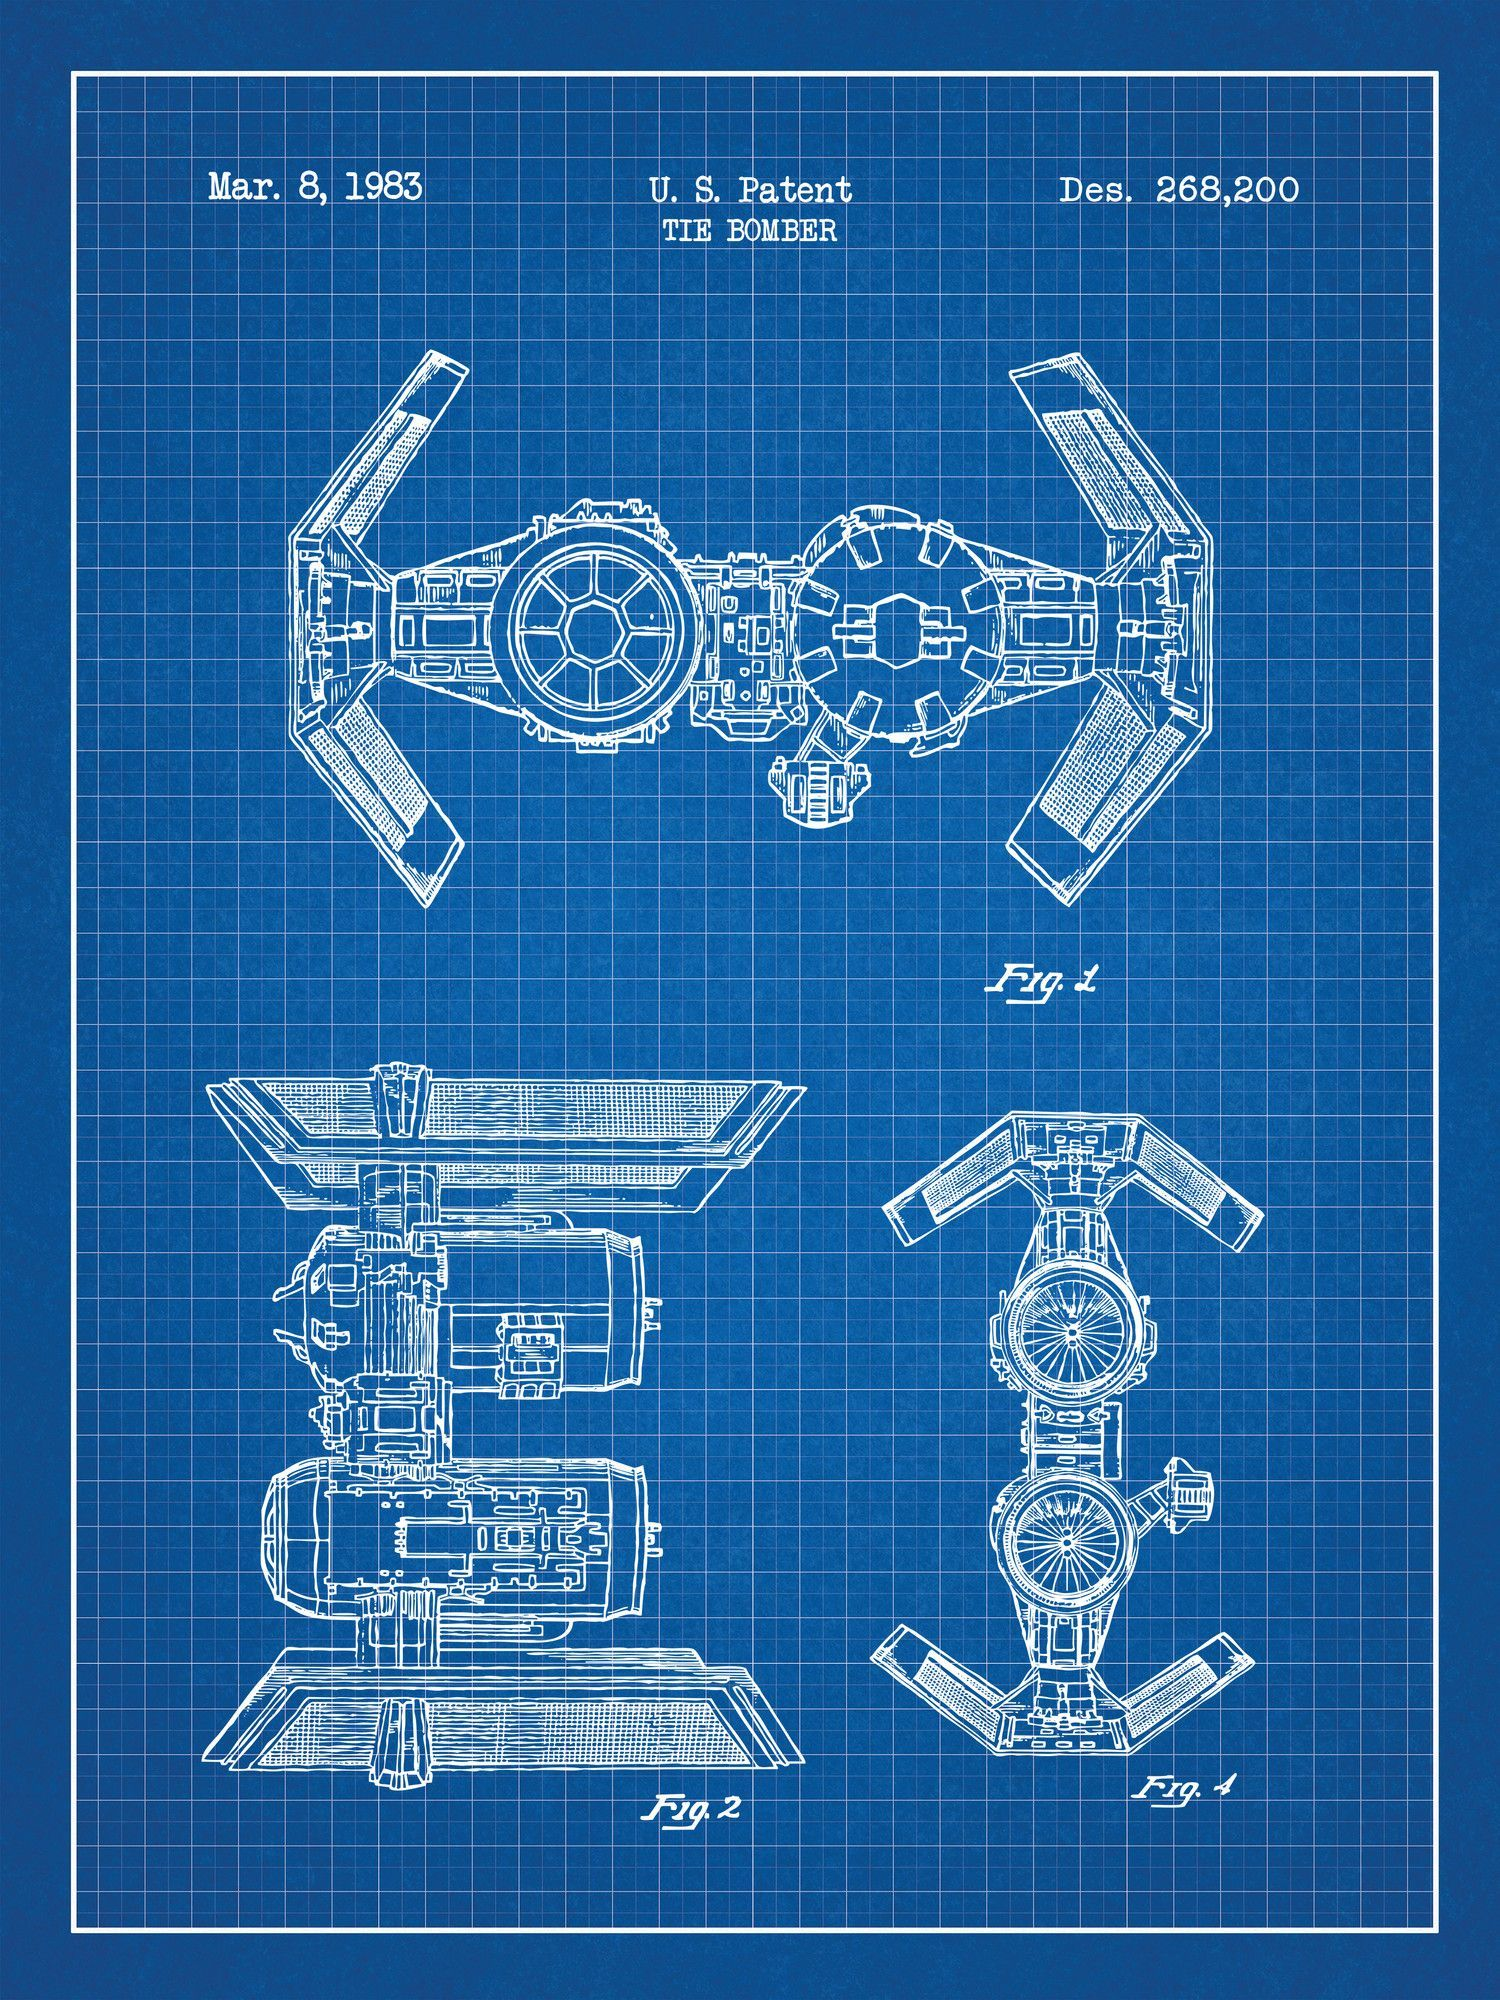 Star wars tie bomber blueprint graphic art poster in blue grid star wars tie bomber blueprint graphic art poster in blue gridwhite ink malvernweather Gallery